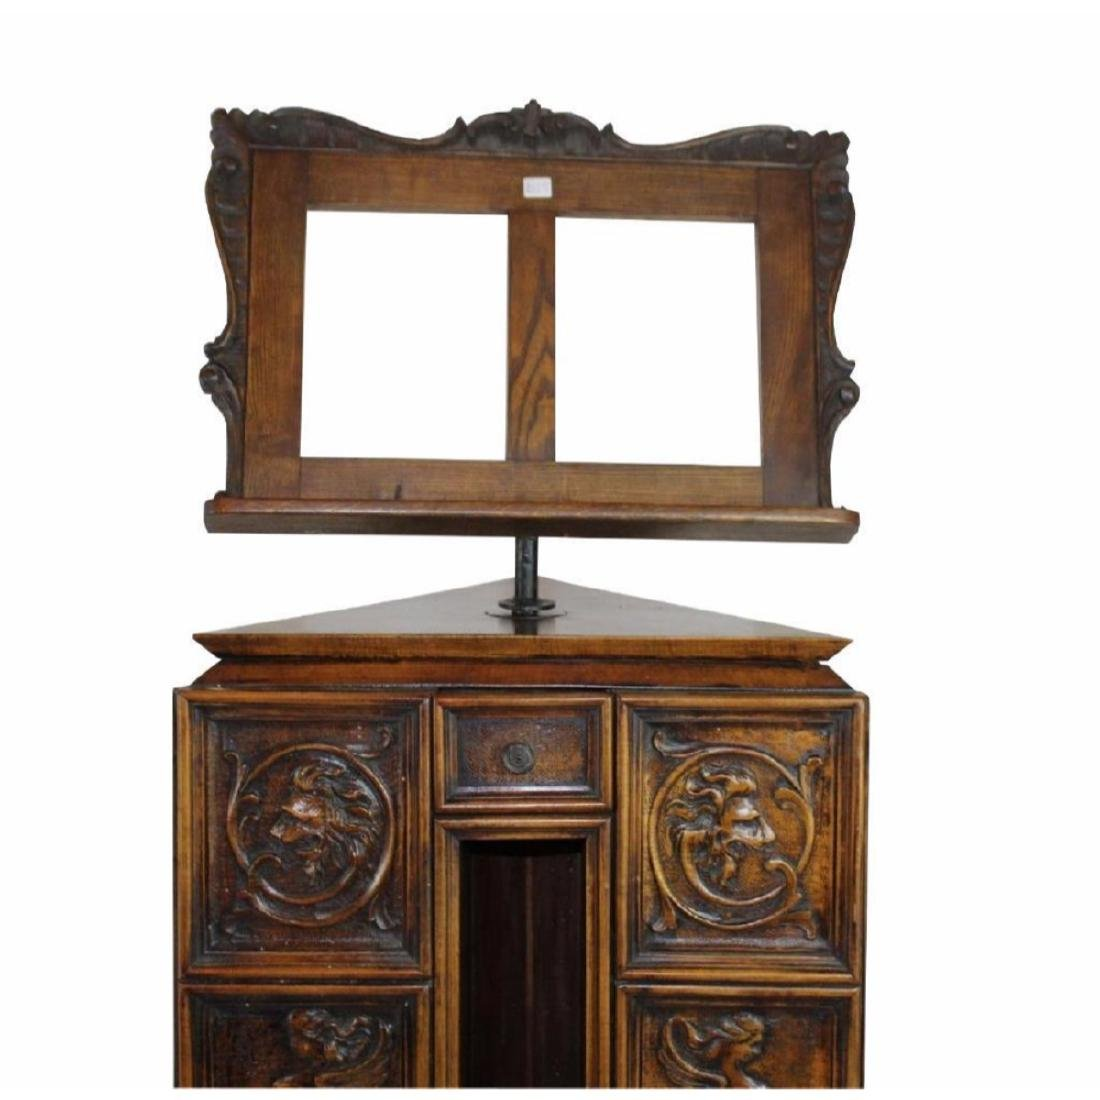 Italian Gothic Revival Carved Oak Lecturn - 2